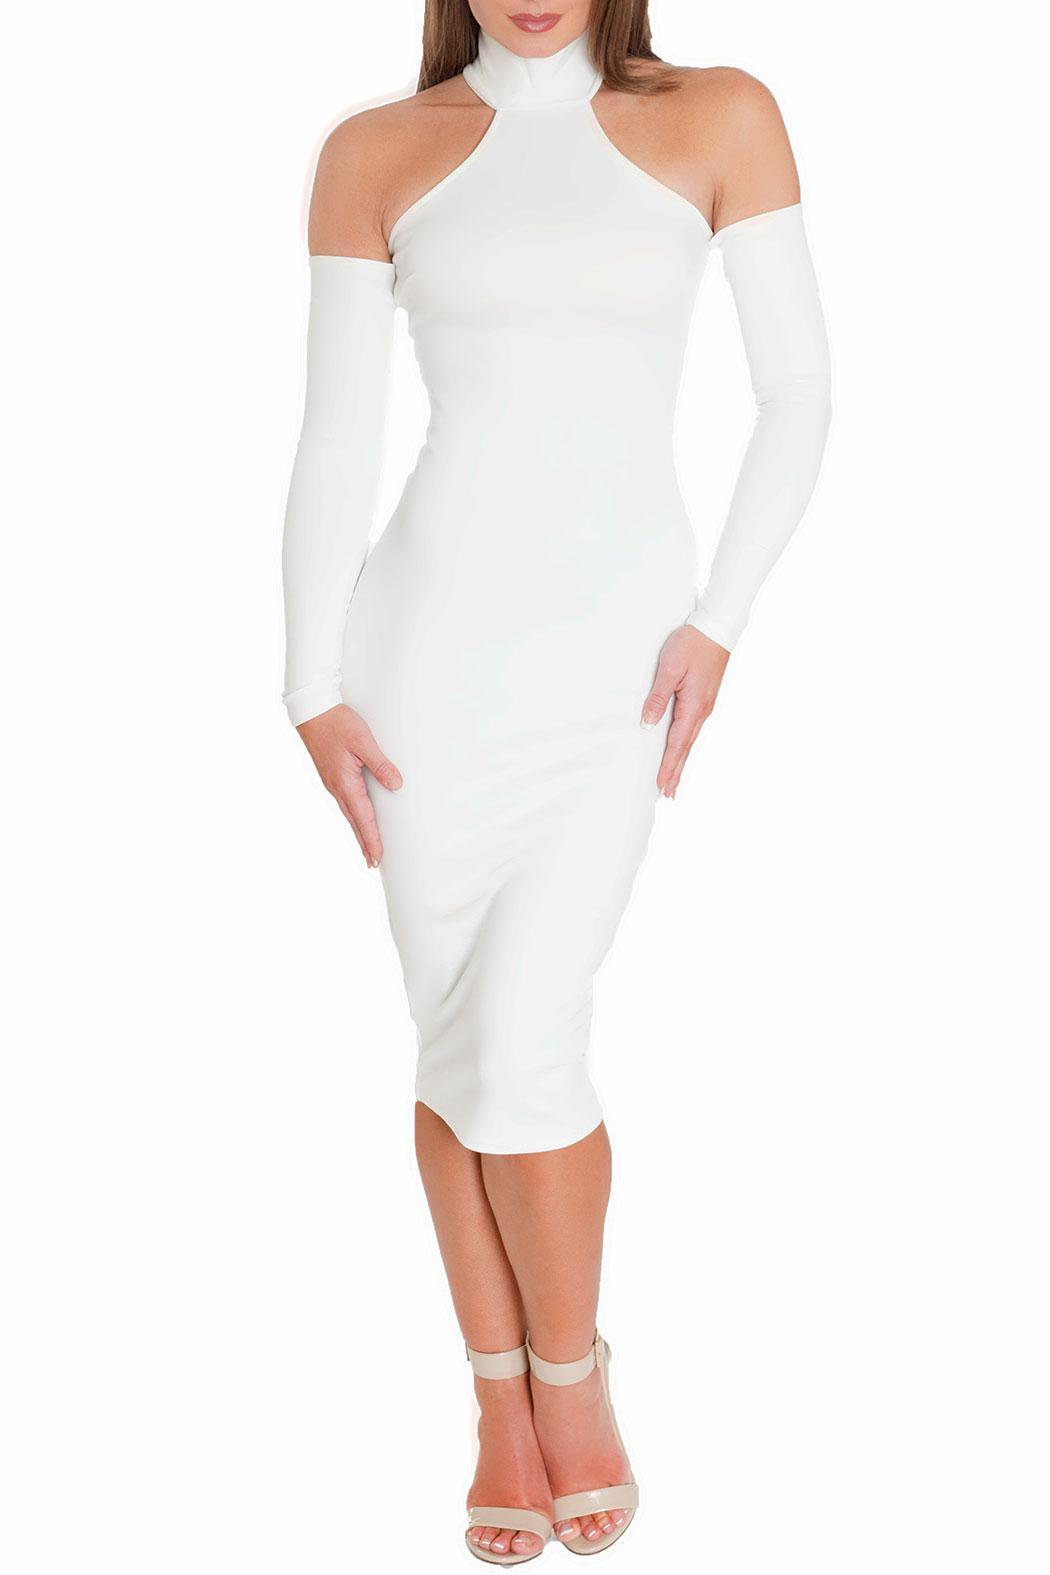 Chynna Dolls Kyla Midi Dress - Front Cropped Image